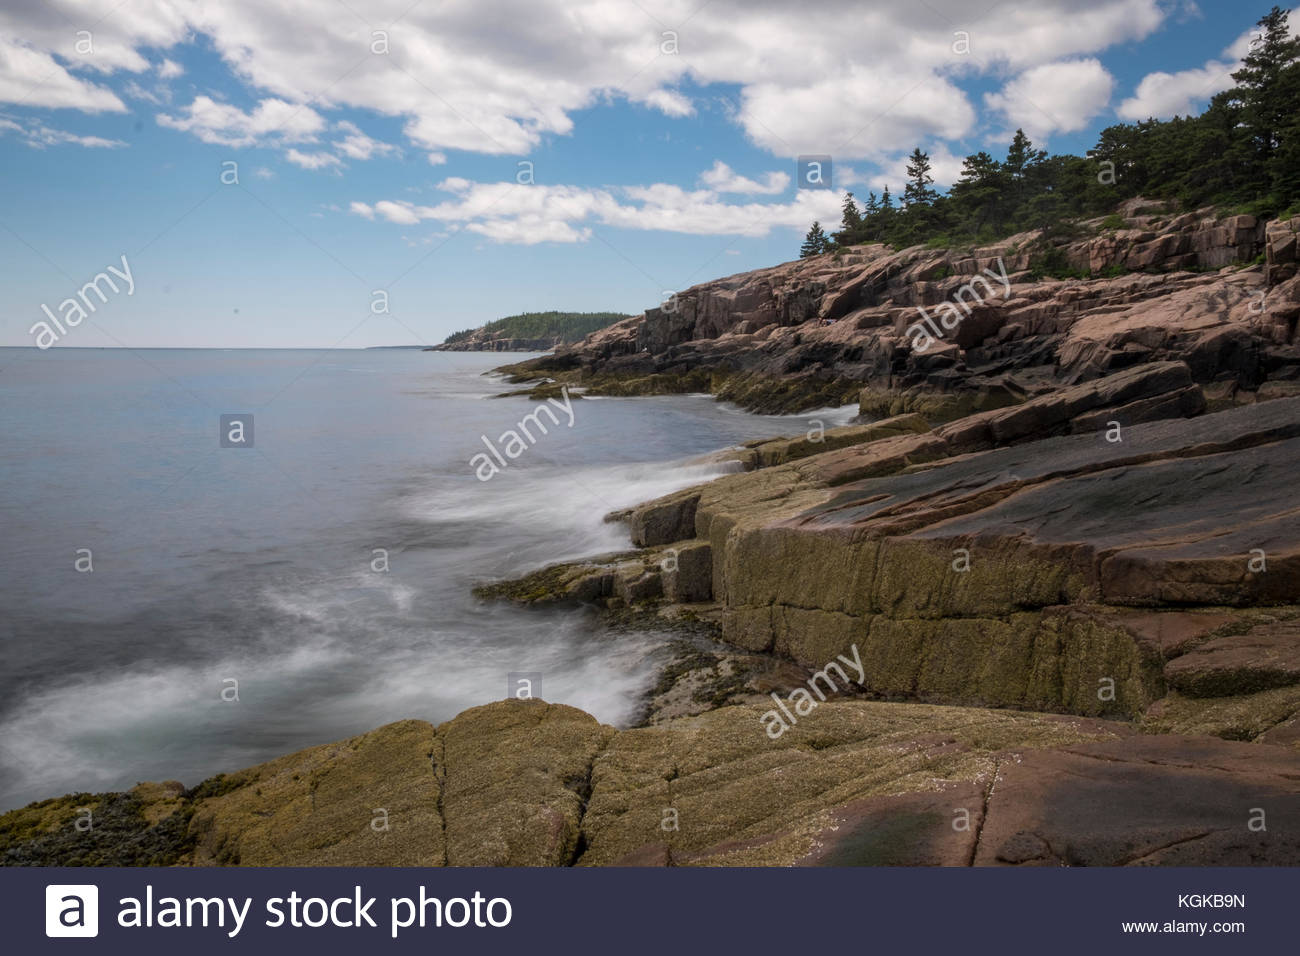 The rocky shoreline at Acadia National Park. - Stock Image